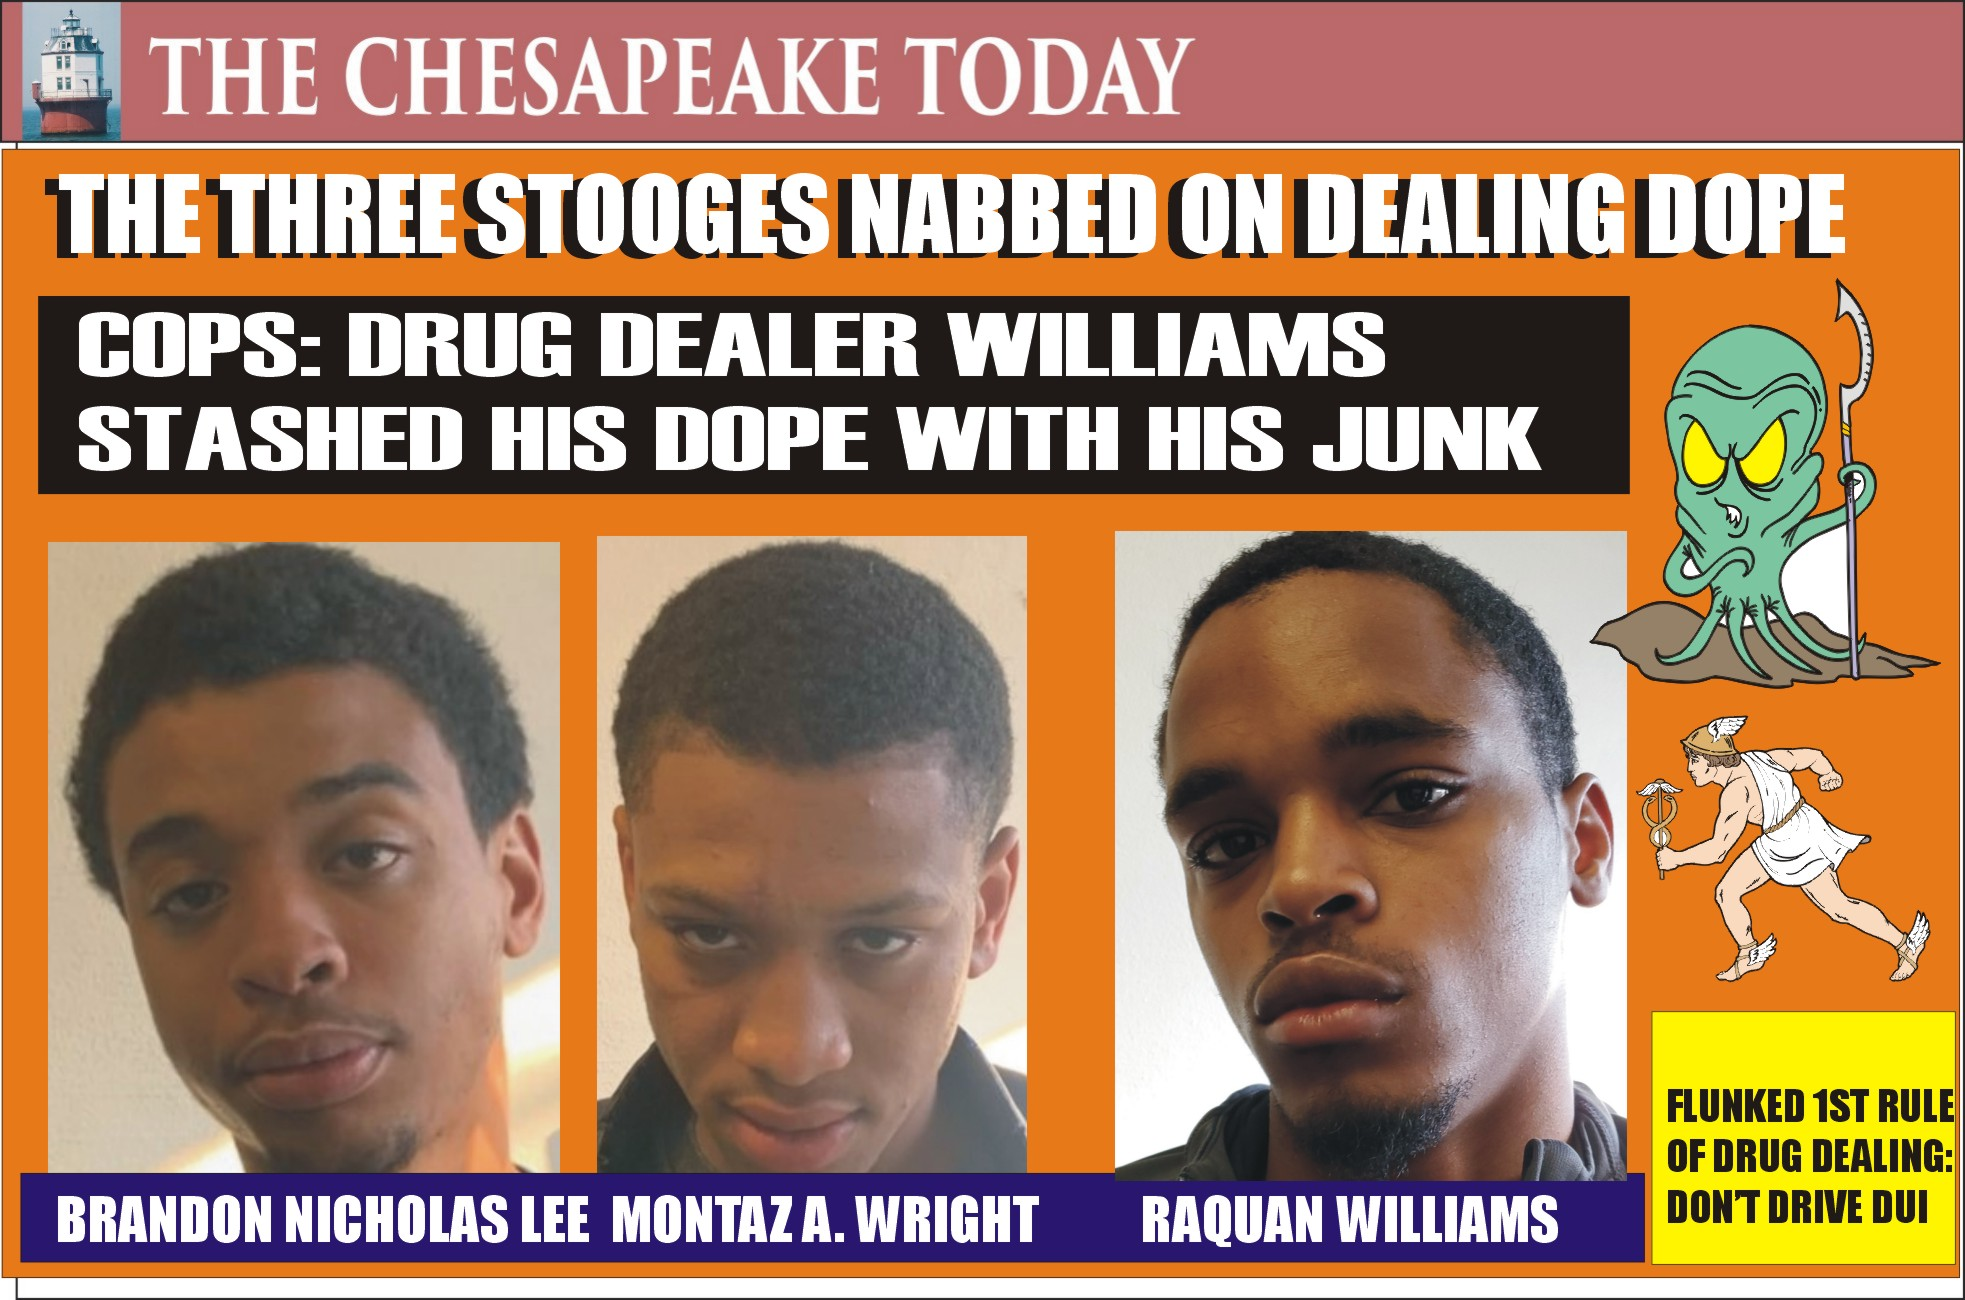 COCAINE & POT GO TOGETHER LIKE A HORSE AND CARRIAGE: Three Stooges from Baltimore caught with all the tools needed for dealing drugs